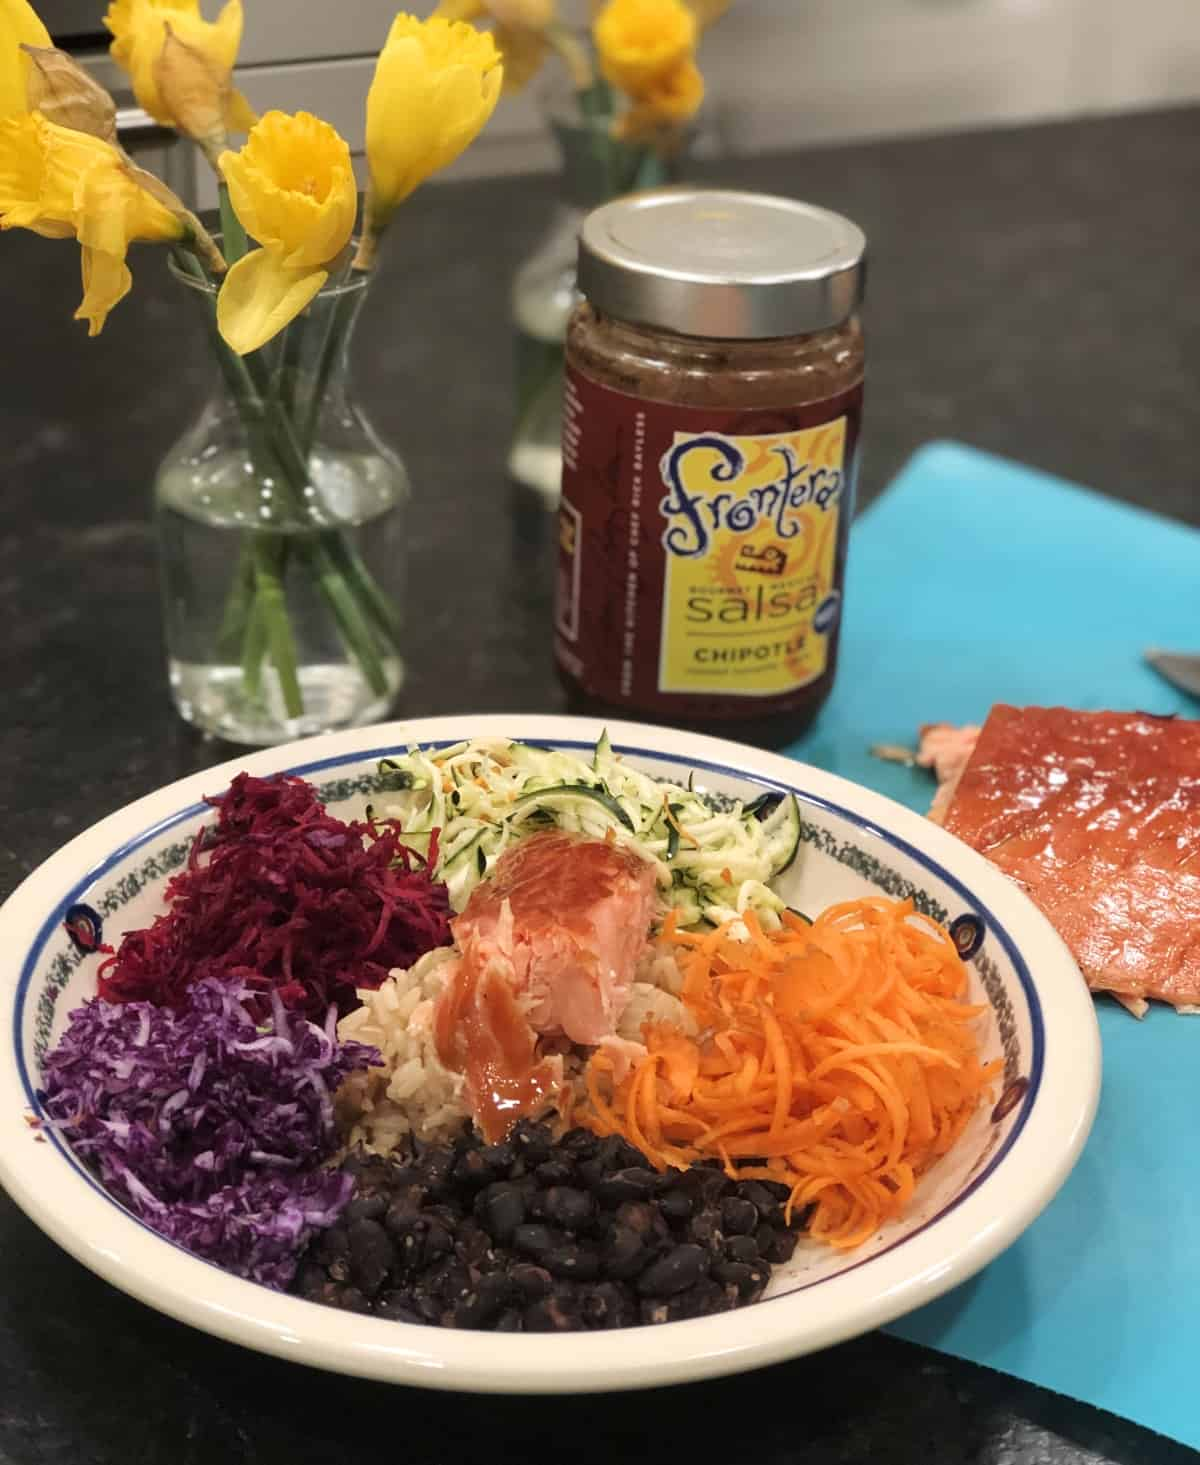 Salmon power bowl with black beans, shredded carrots, zucchini, beets and cabbage and jar of salsa in the background.